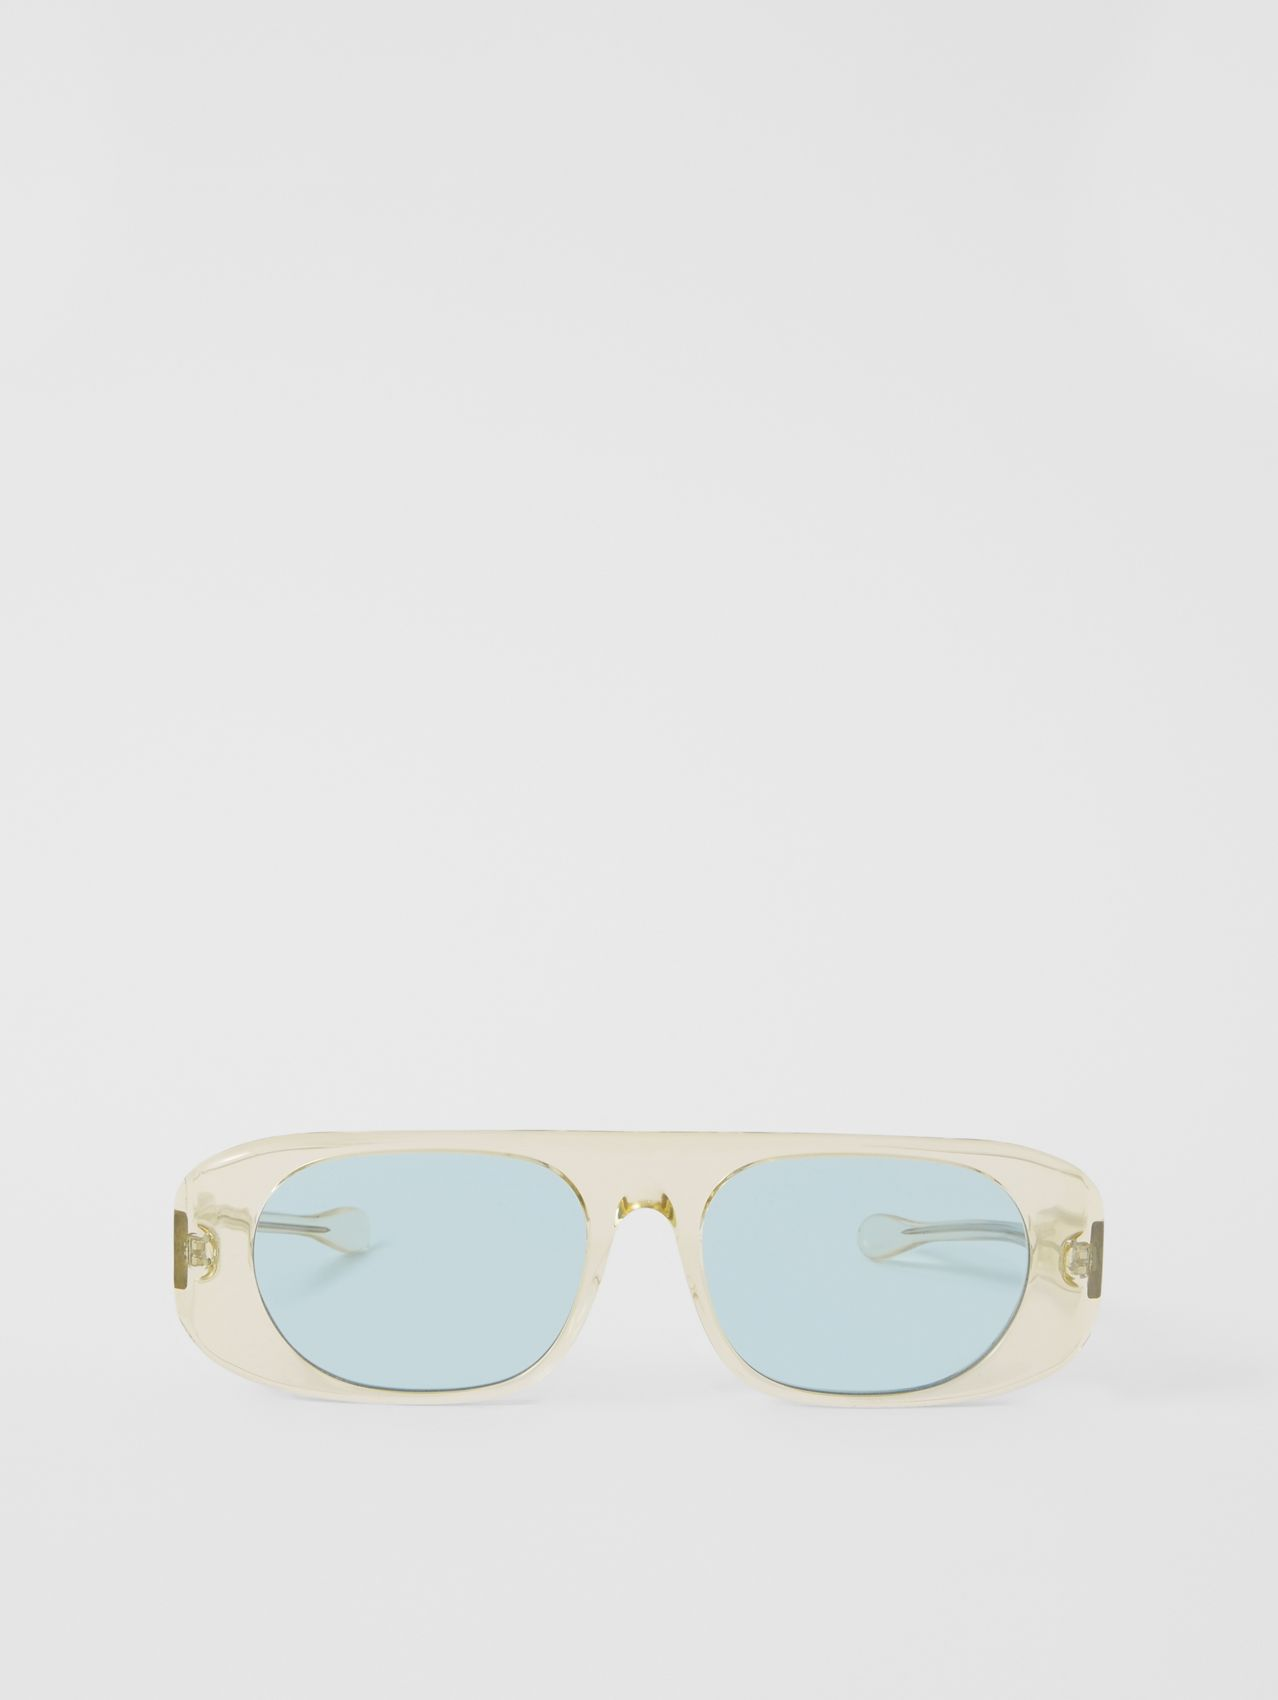 Blake Sunglasses in Transparent Champagne